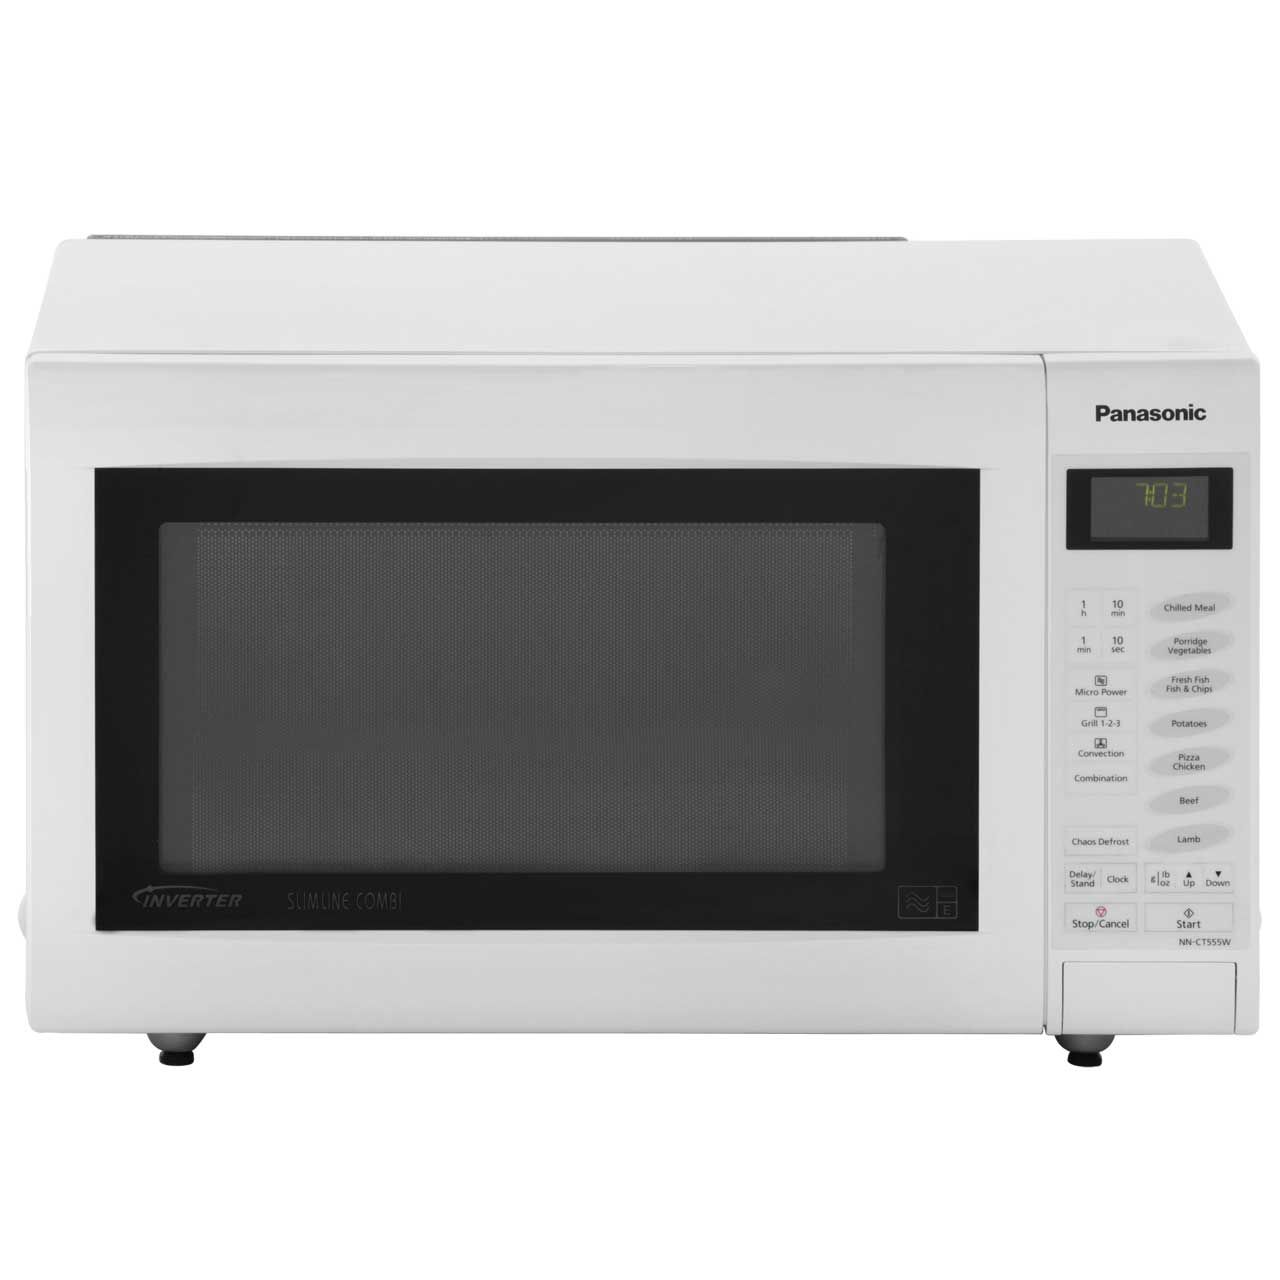 Panasonic Slimline Combination Nn Ct555wbpq 27 Litre 1000 Watt Microwave Oven White